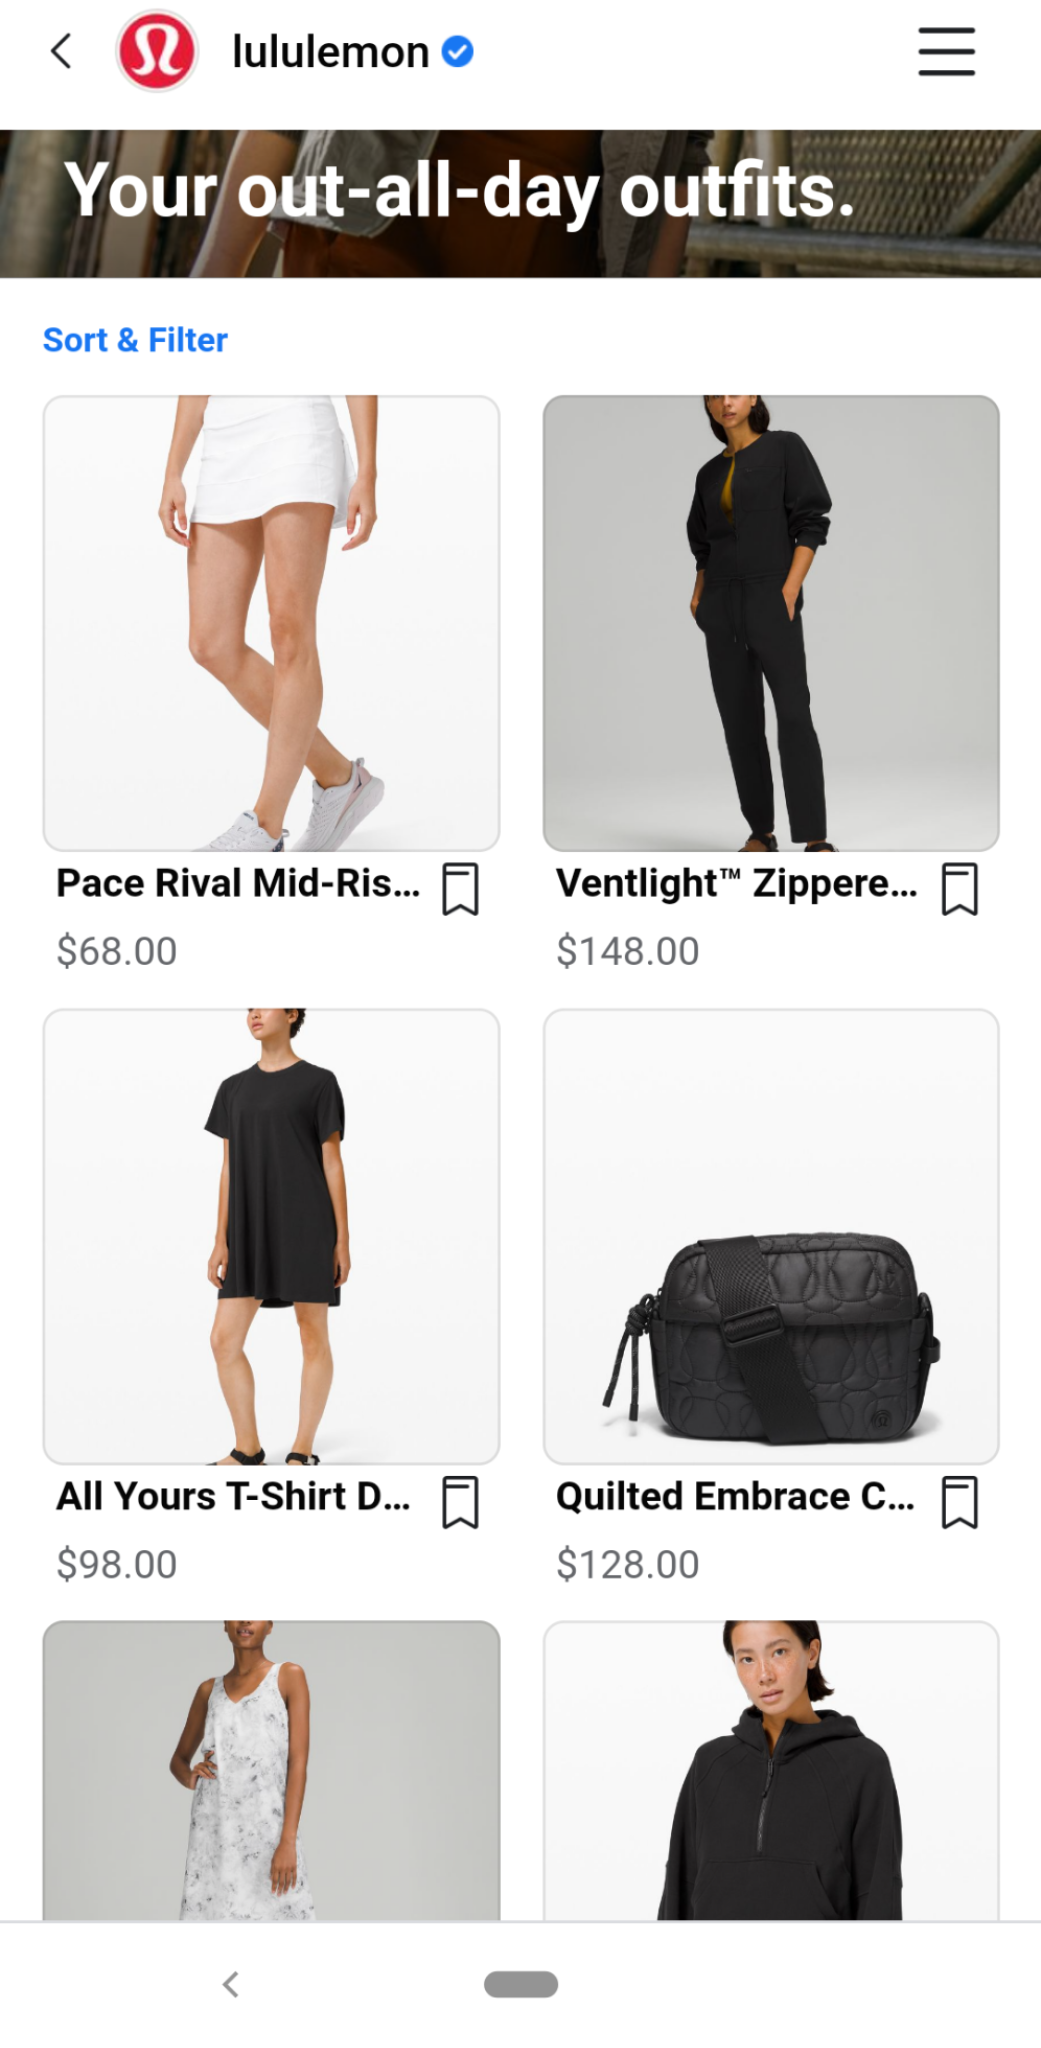 product collection in facebook shops